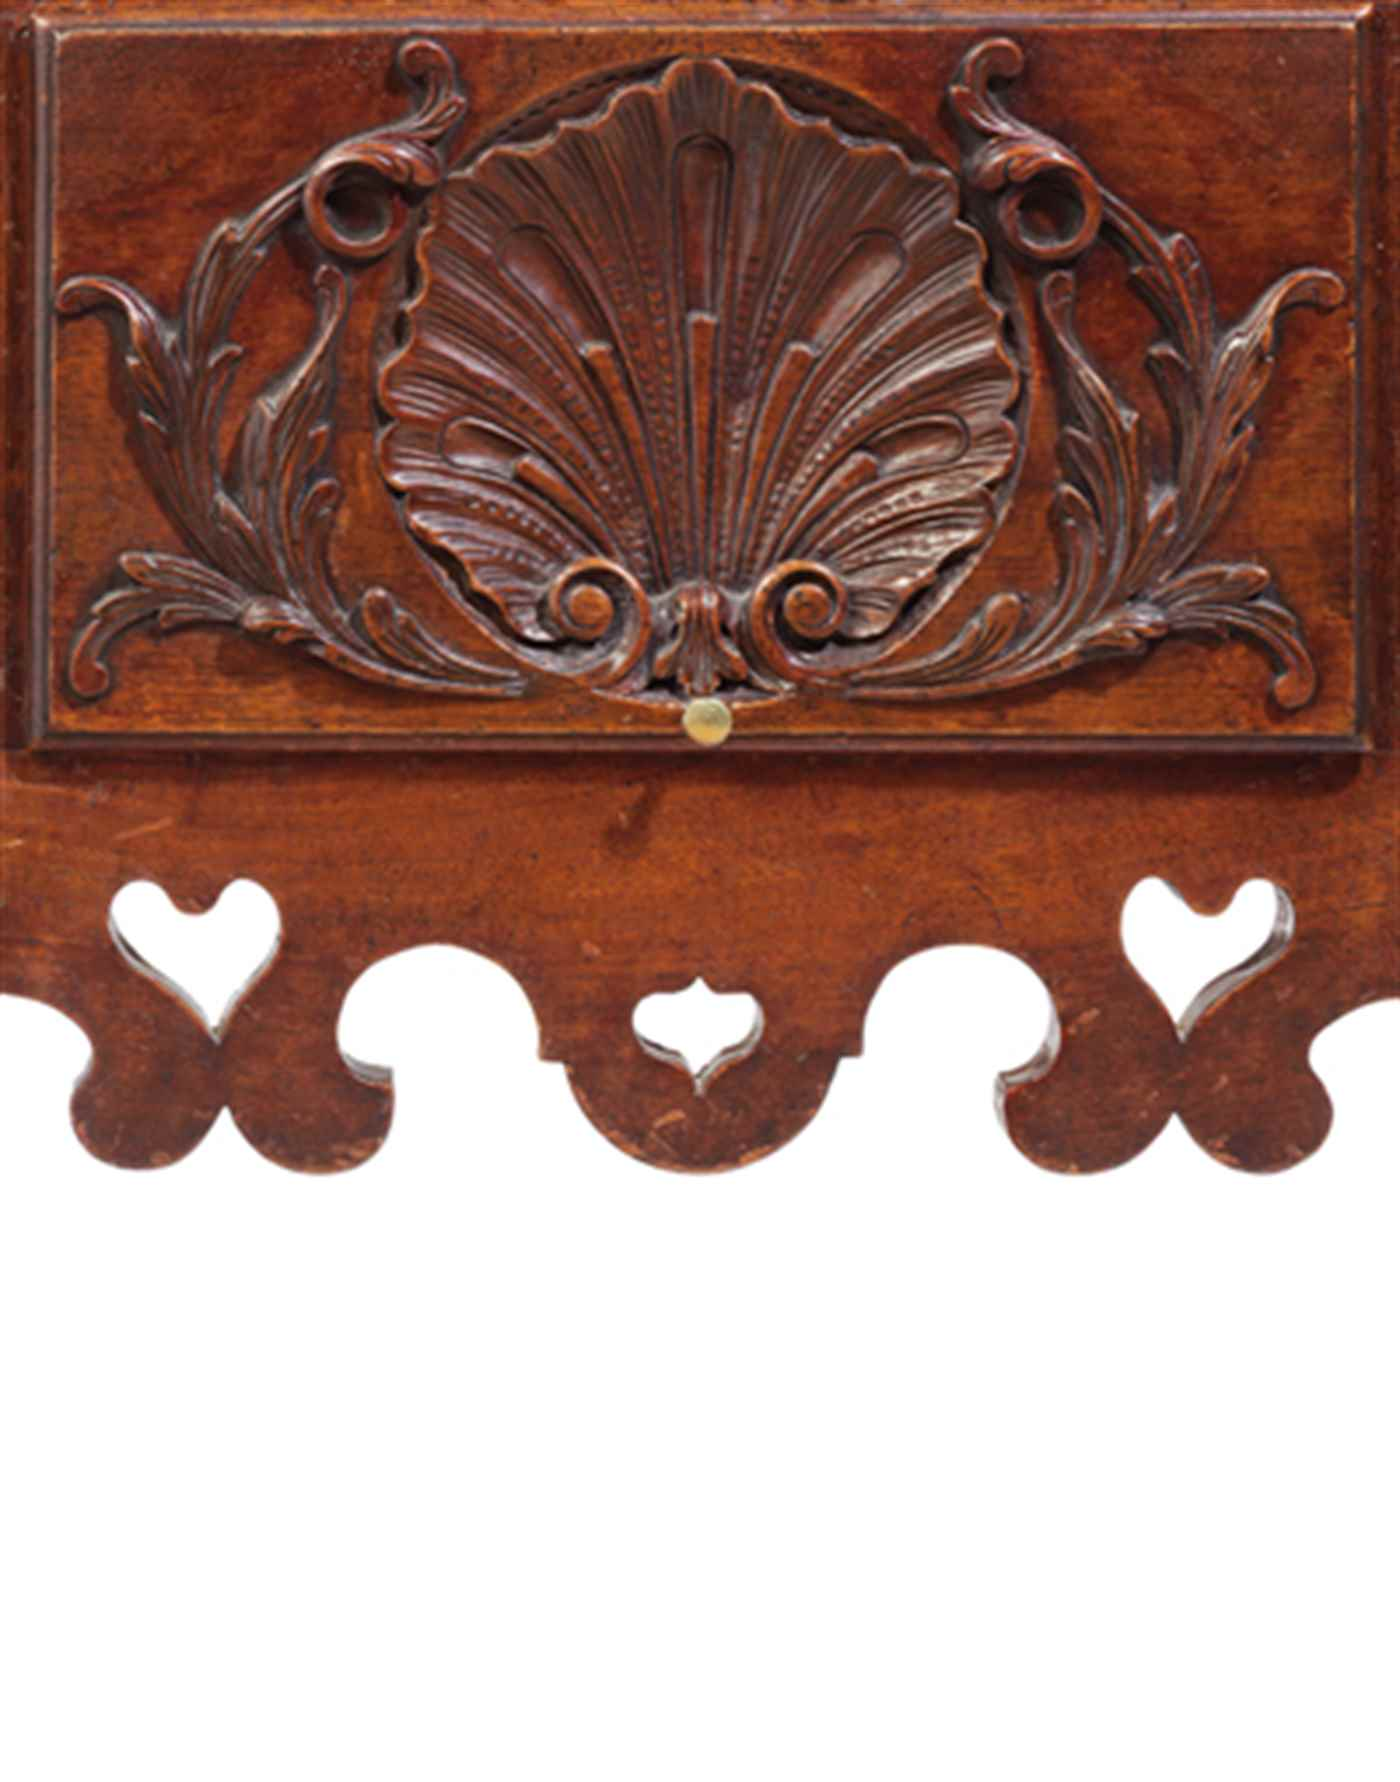 Important American Furniture, Silver, Maritime, Folk and Outsider Art